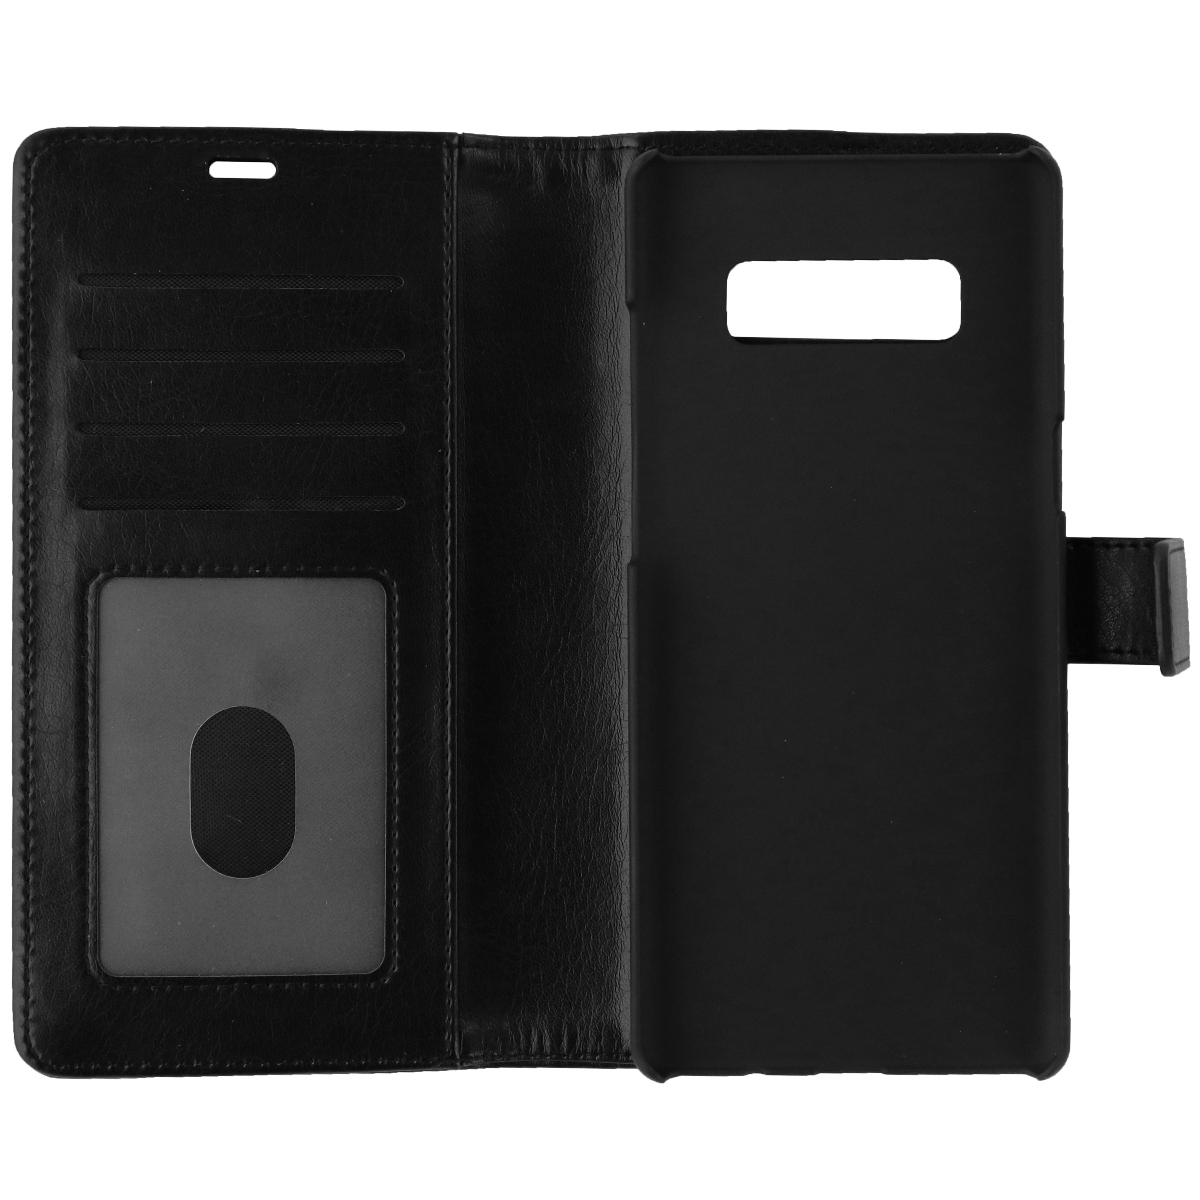 Skech Polo Book Folio Clutch Wallet Protective Case for Galaxy Note 8 - Black